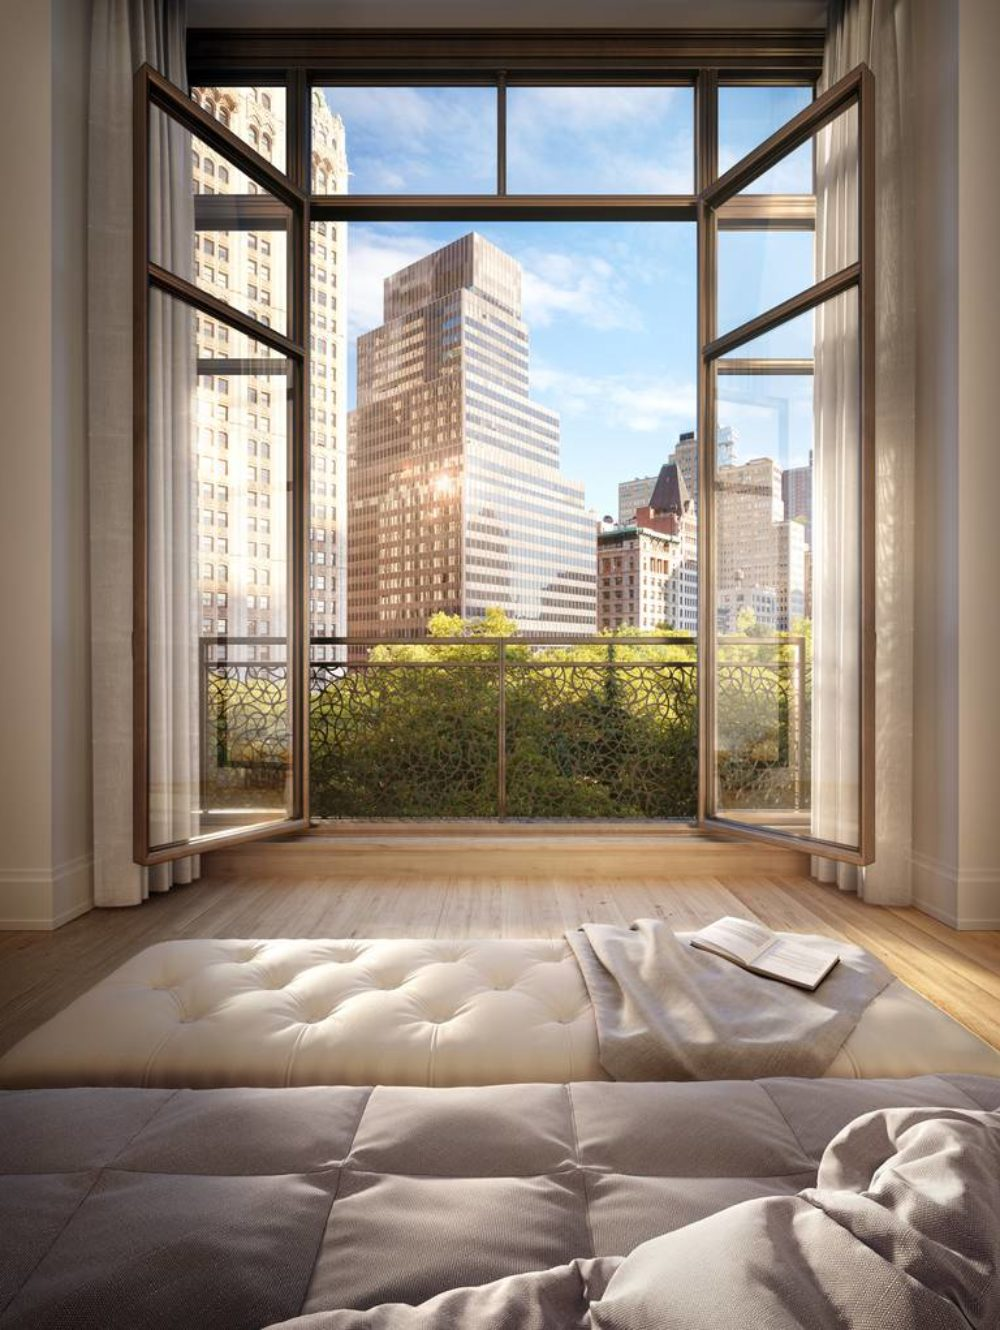 Interior view of Juliet balcony of 25 Park Row residences with view of NYC. Includes a brown and beige sofa with pillows.